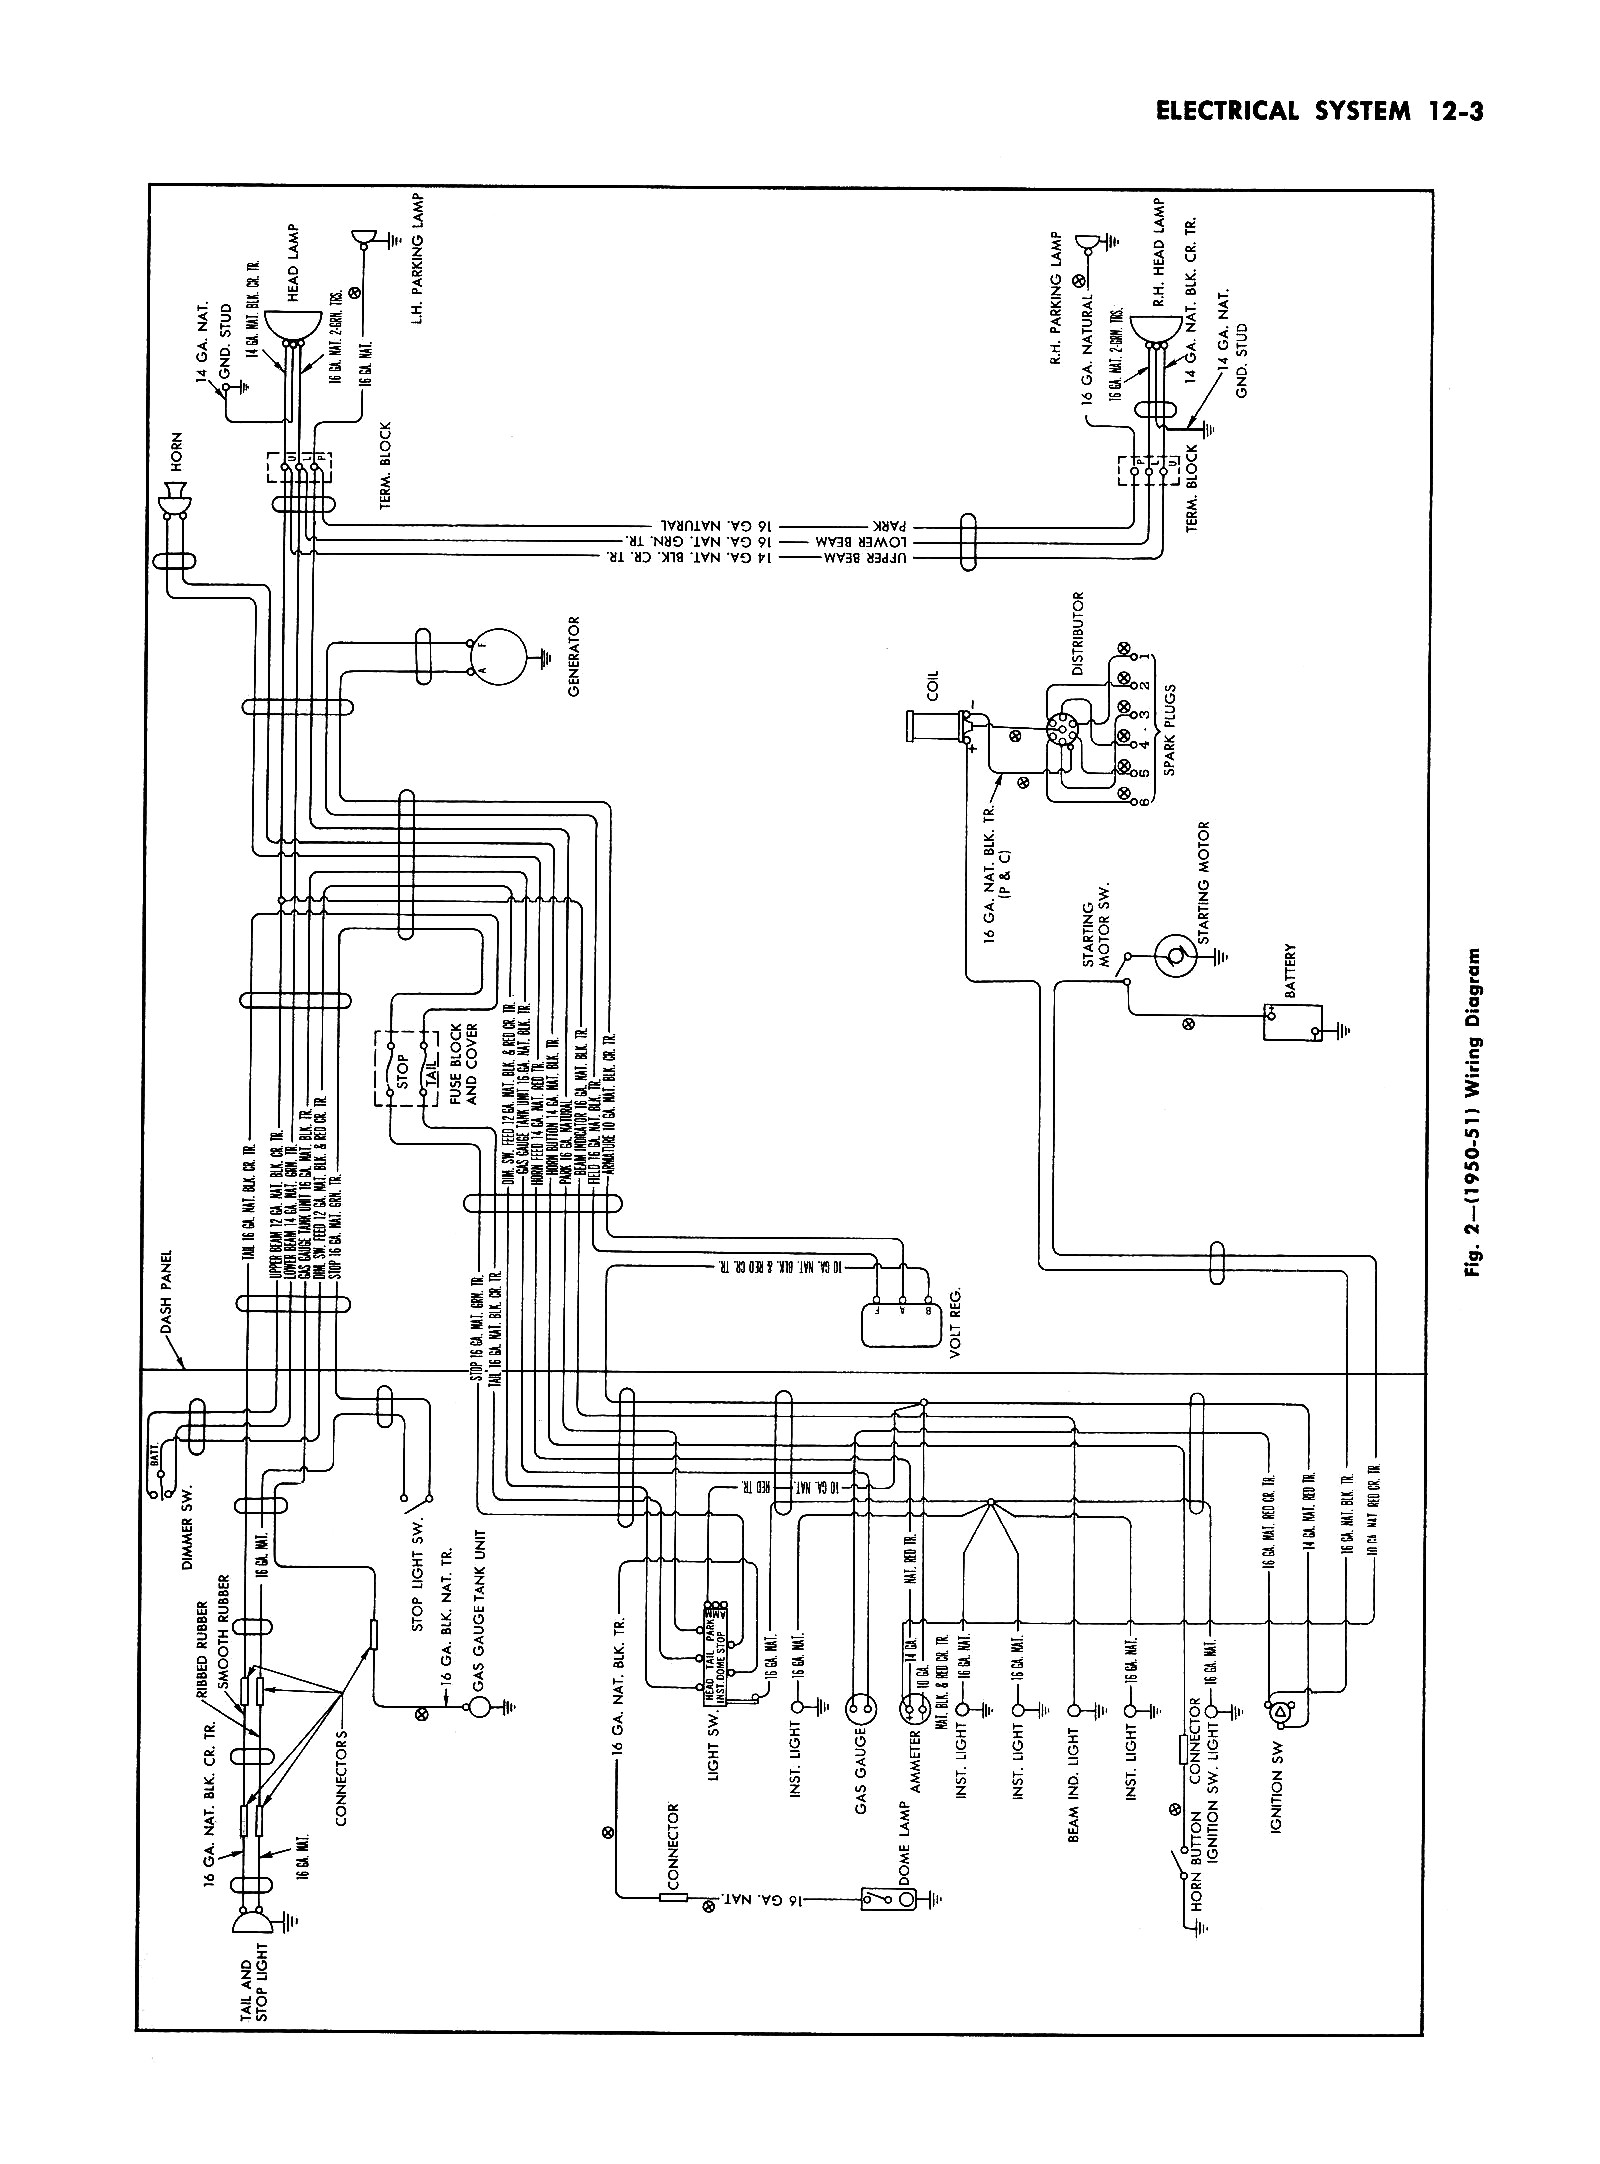 hight resolution of 1949 lincoln wiring harness data diagram schematic 1949 lincoln wiring harness